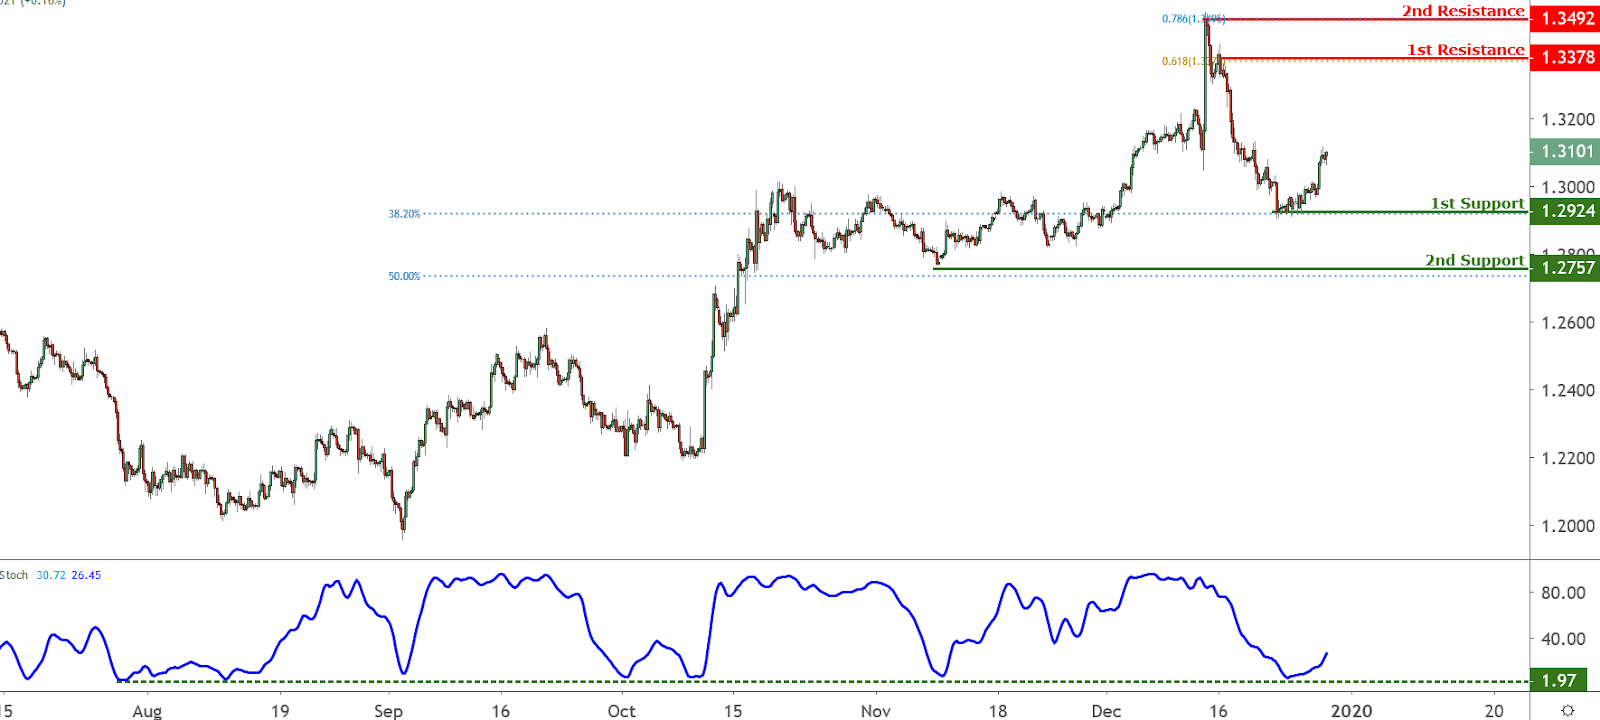 GBPUSD Chart, Source: TradingView.com